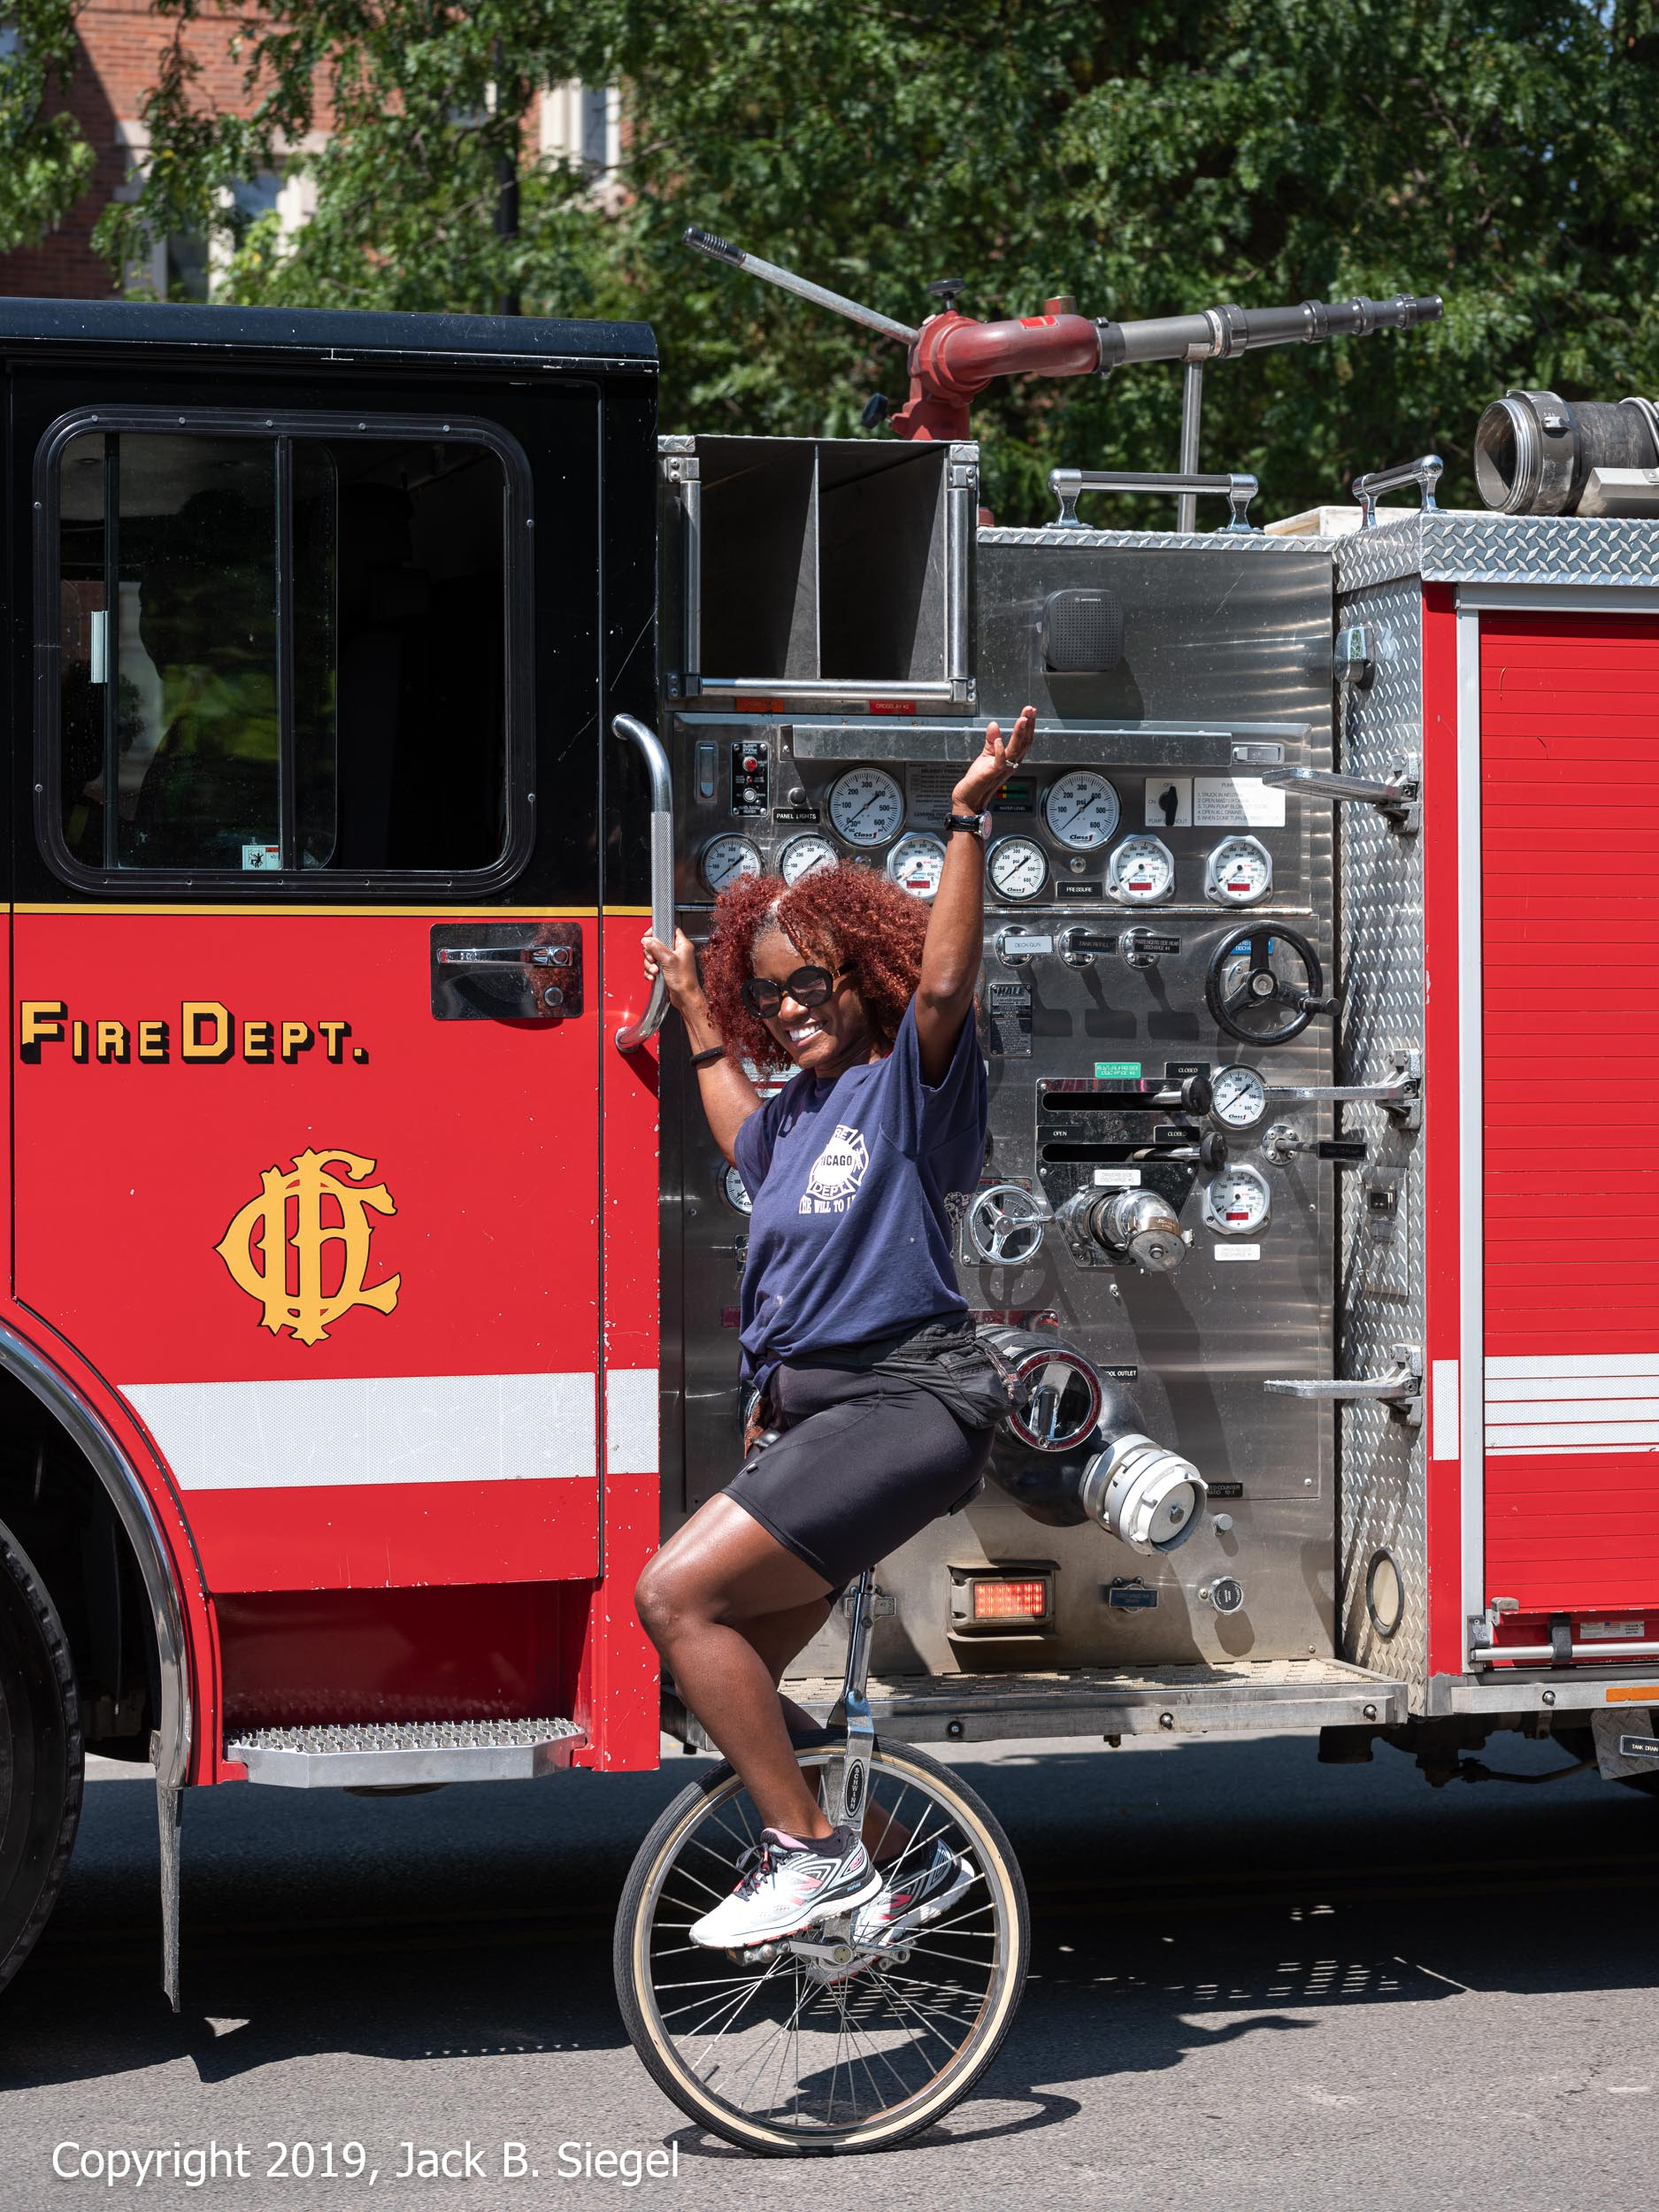 DSCF8983_Copyright 2018 jpeg_A Firewoman on a Unicycle.jpg